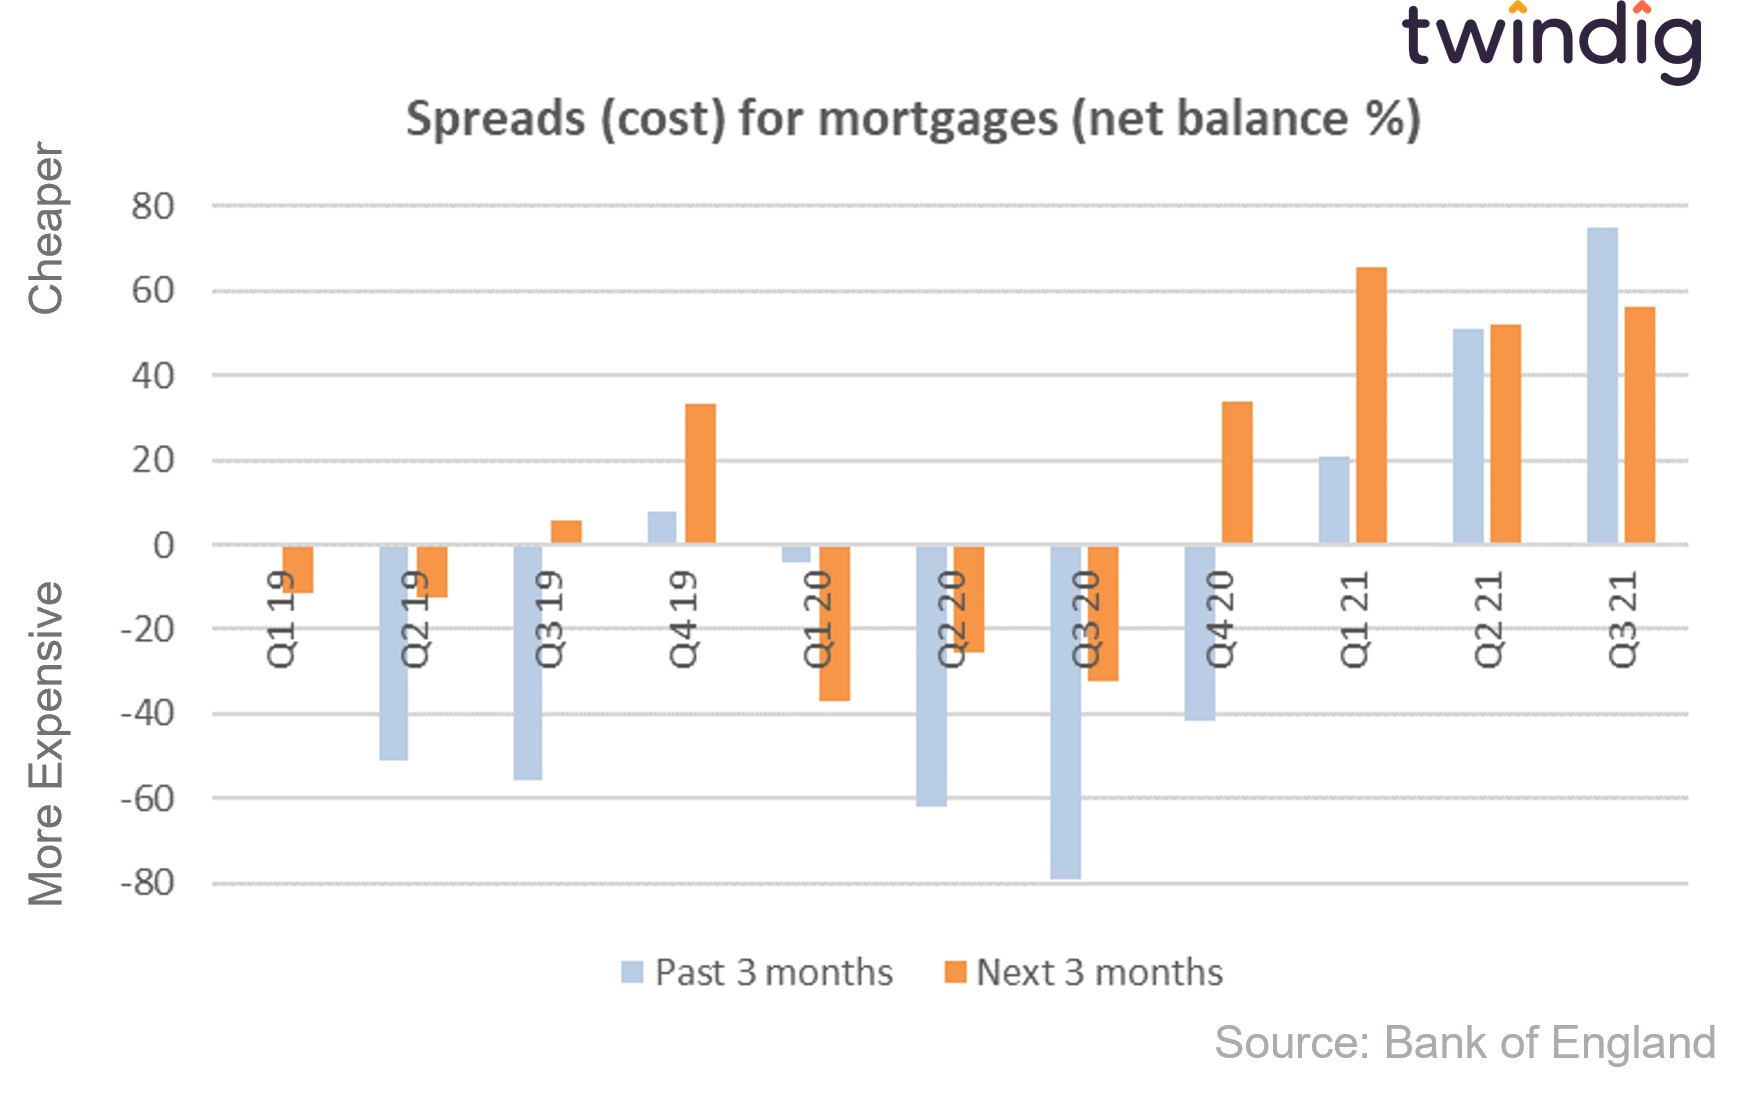 Graph chart showing cost of mortgages bank of england credit conditions survey twindig anthony codling